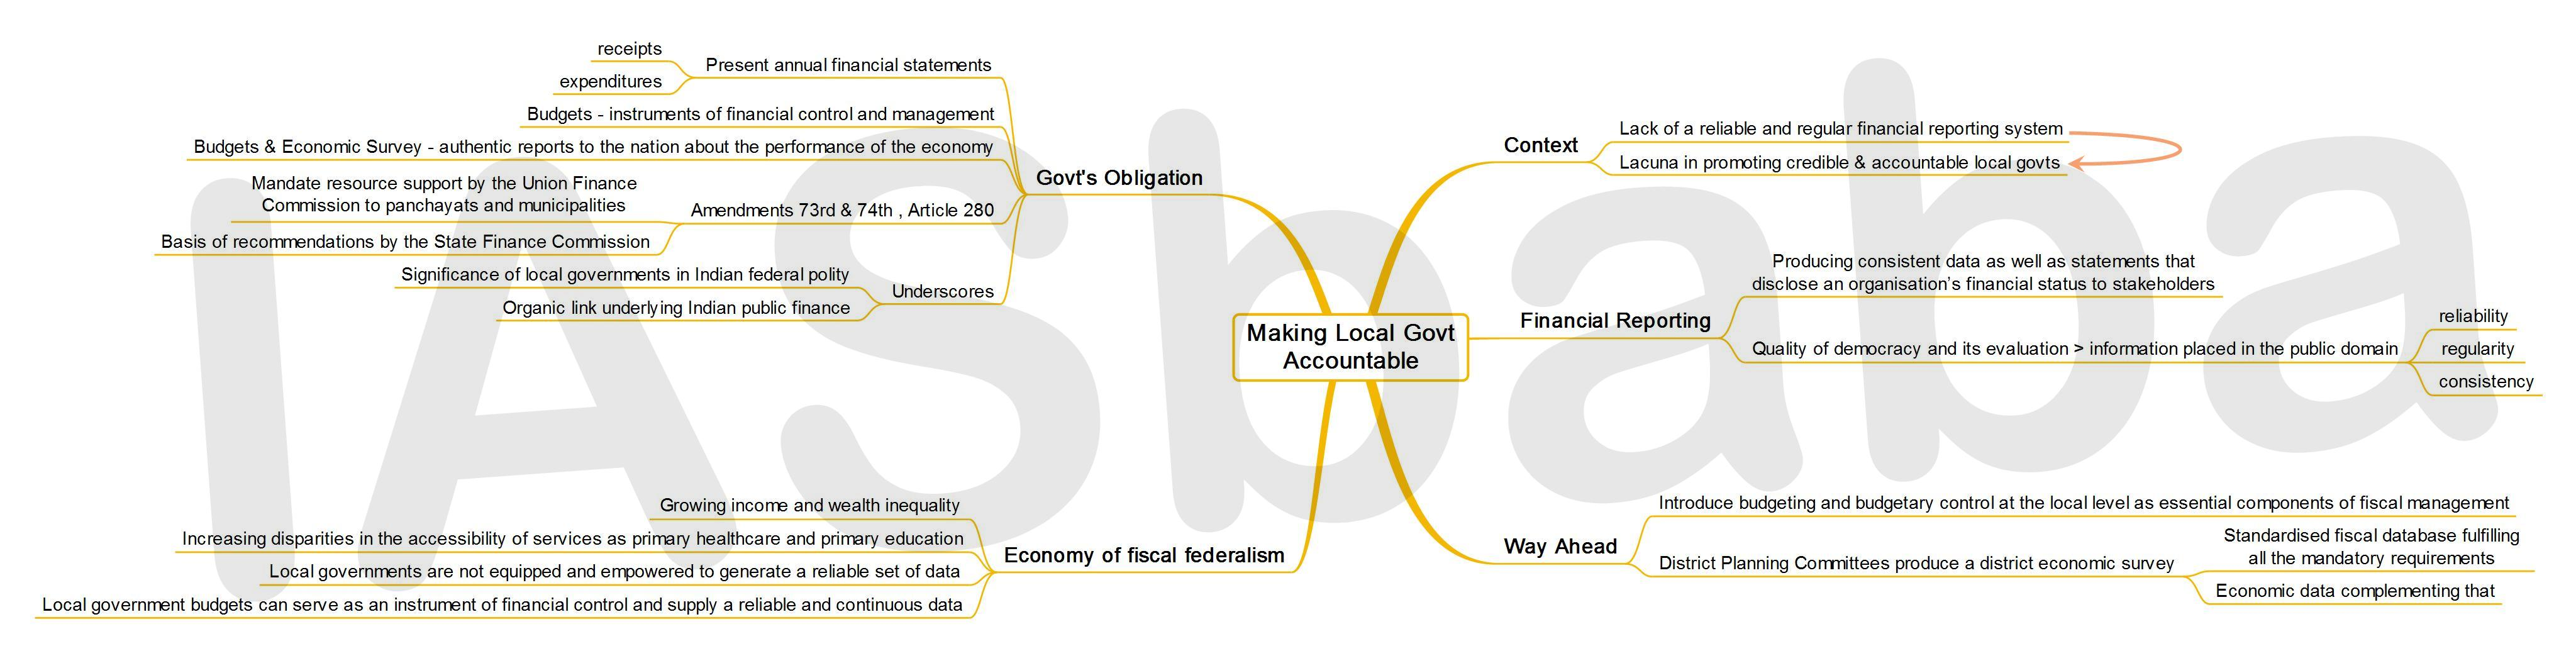 IASbaba's MINDMAP : Issue - Making Local Governments Accountable